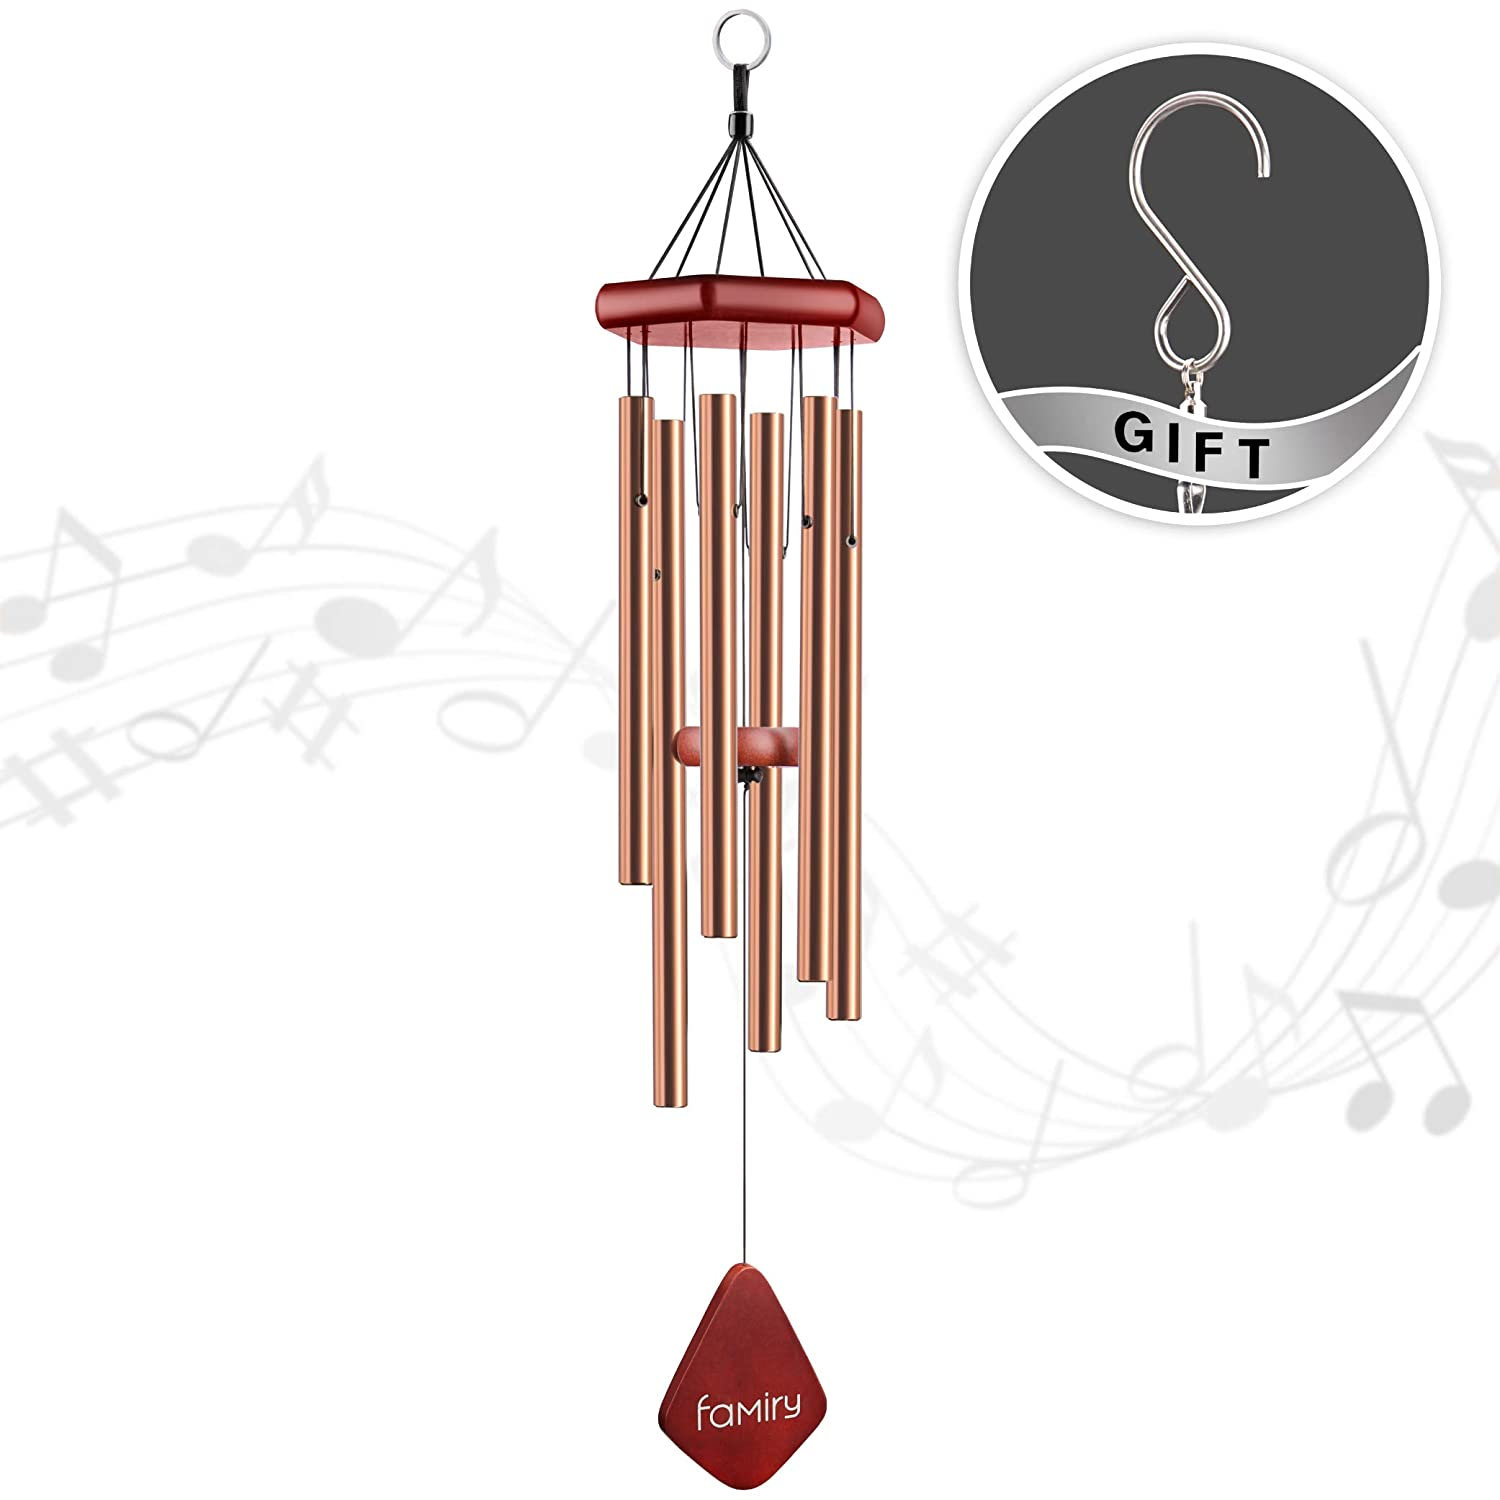 Famiry Wind Chimes Outdoor Deep Tone, 32 Inch Amazing Grace Wind Chimes, Memorial Wind Chimes with 6 Metal Tubes & Hook, Outdoor Decor for Garden, Patio, Yard, Home